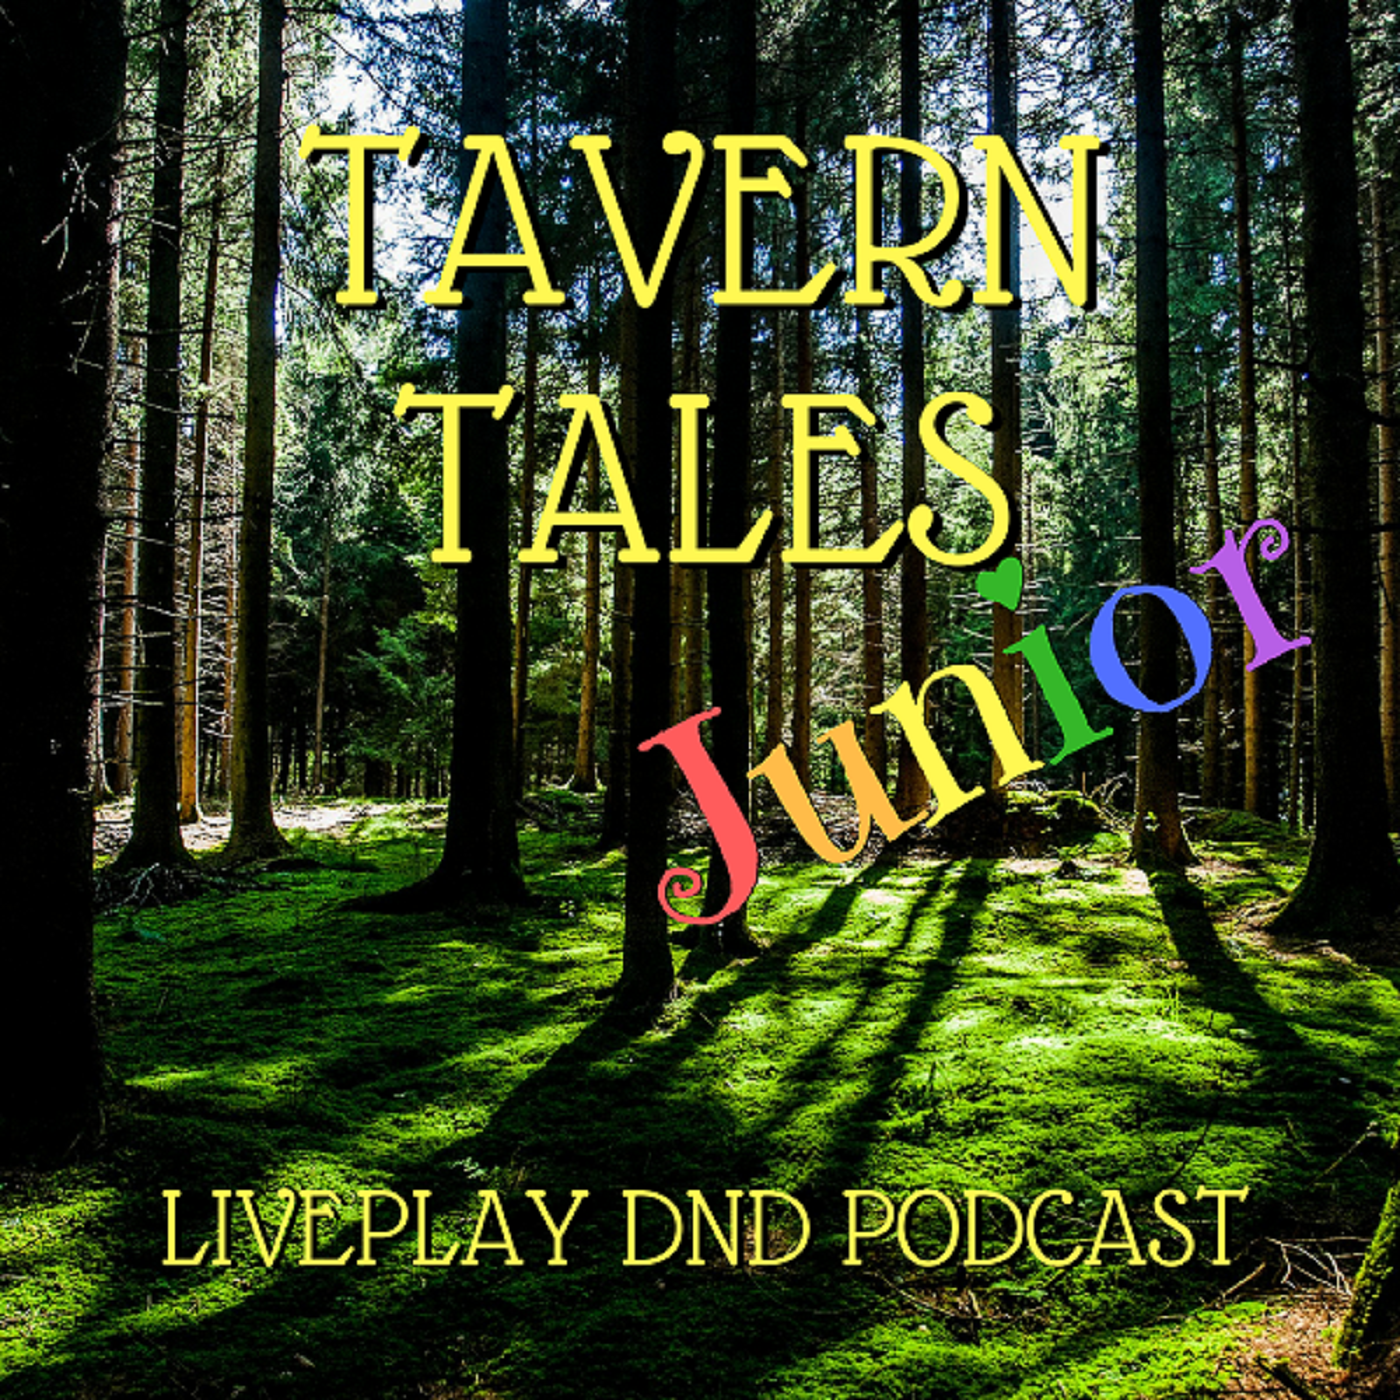 Tavern Tales Junior